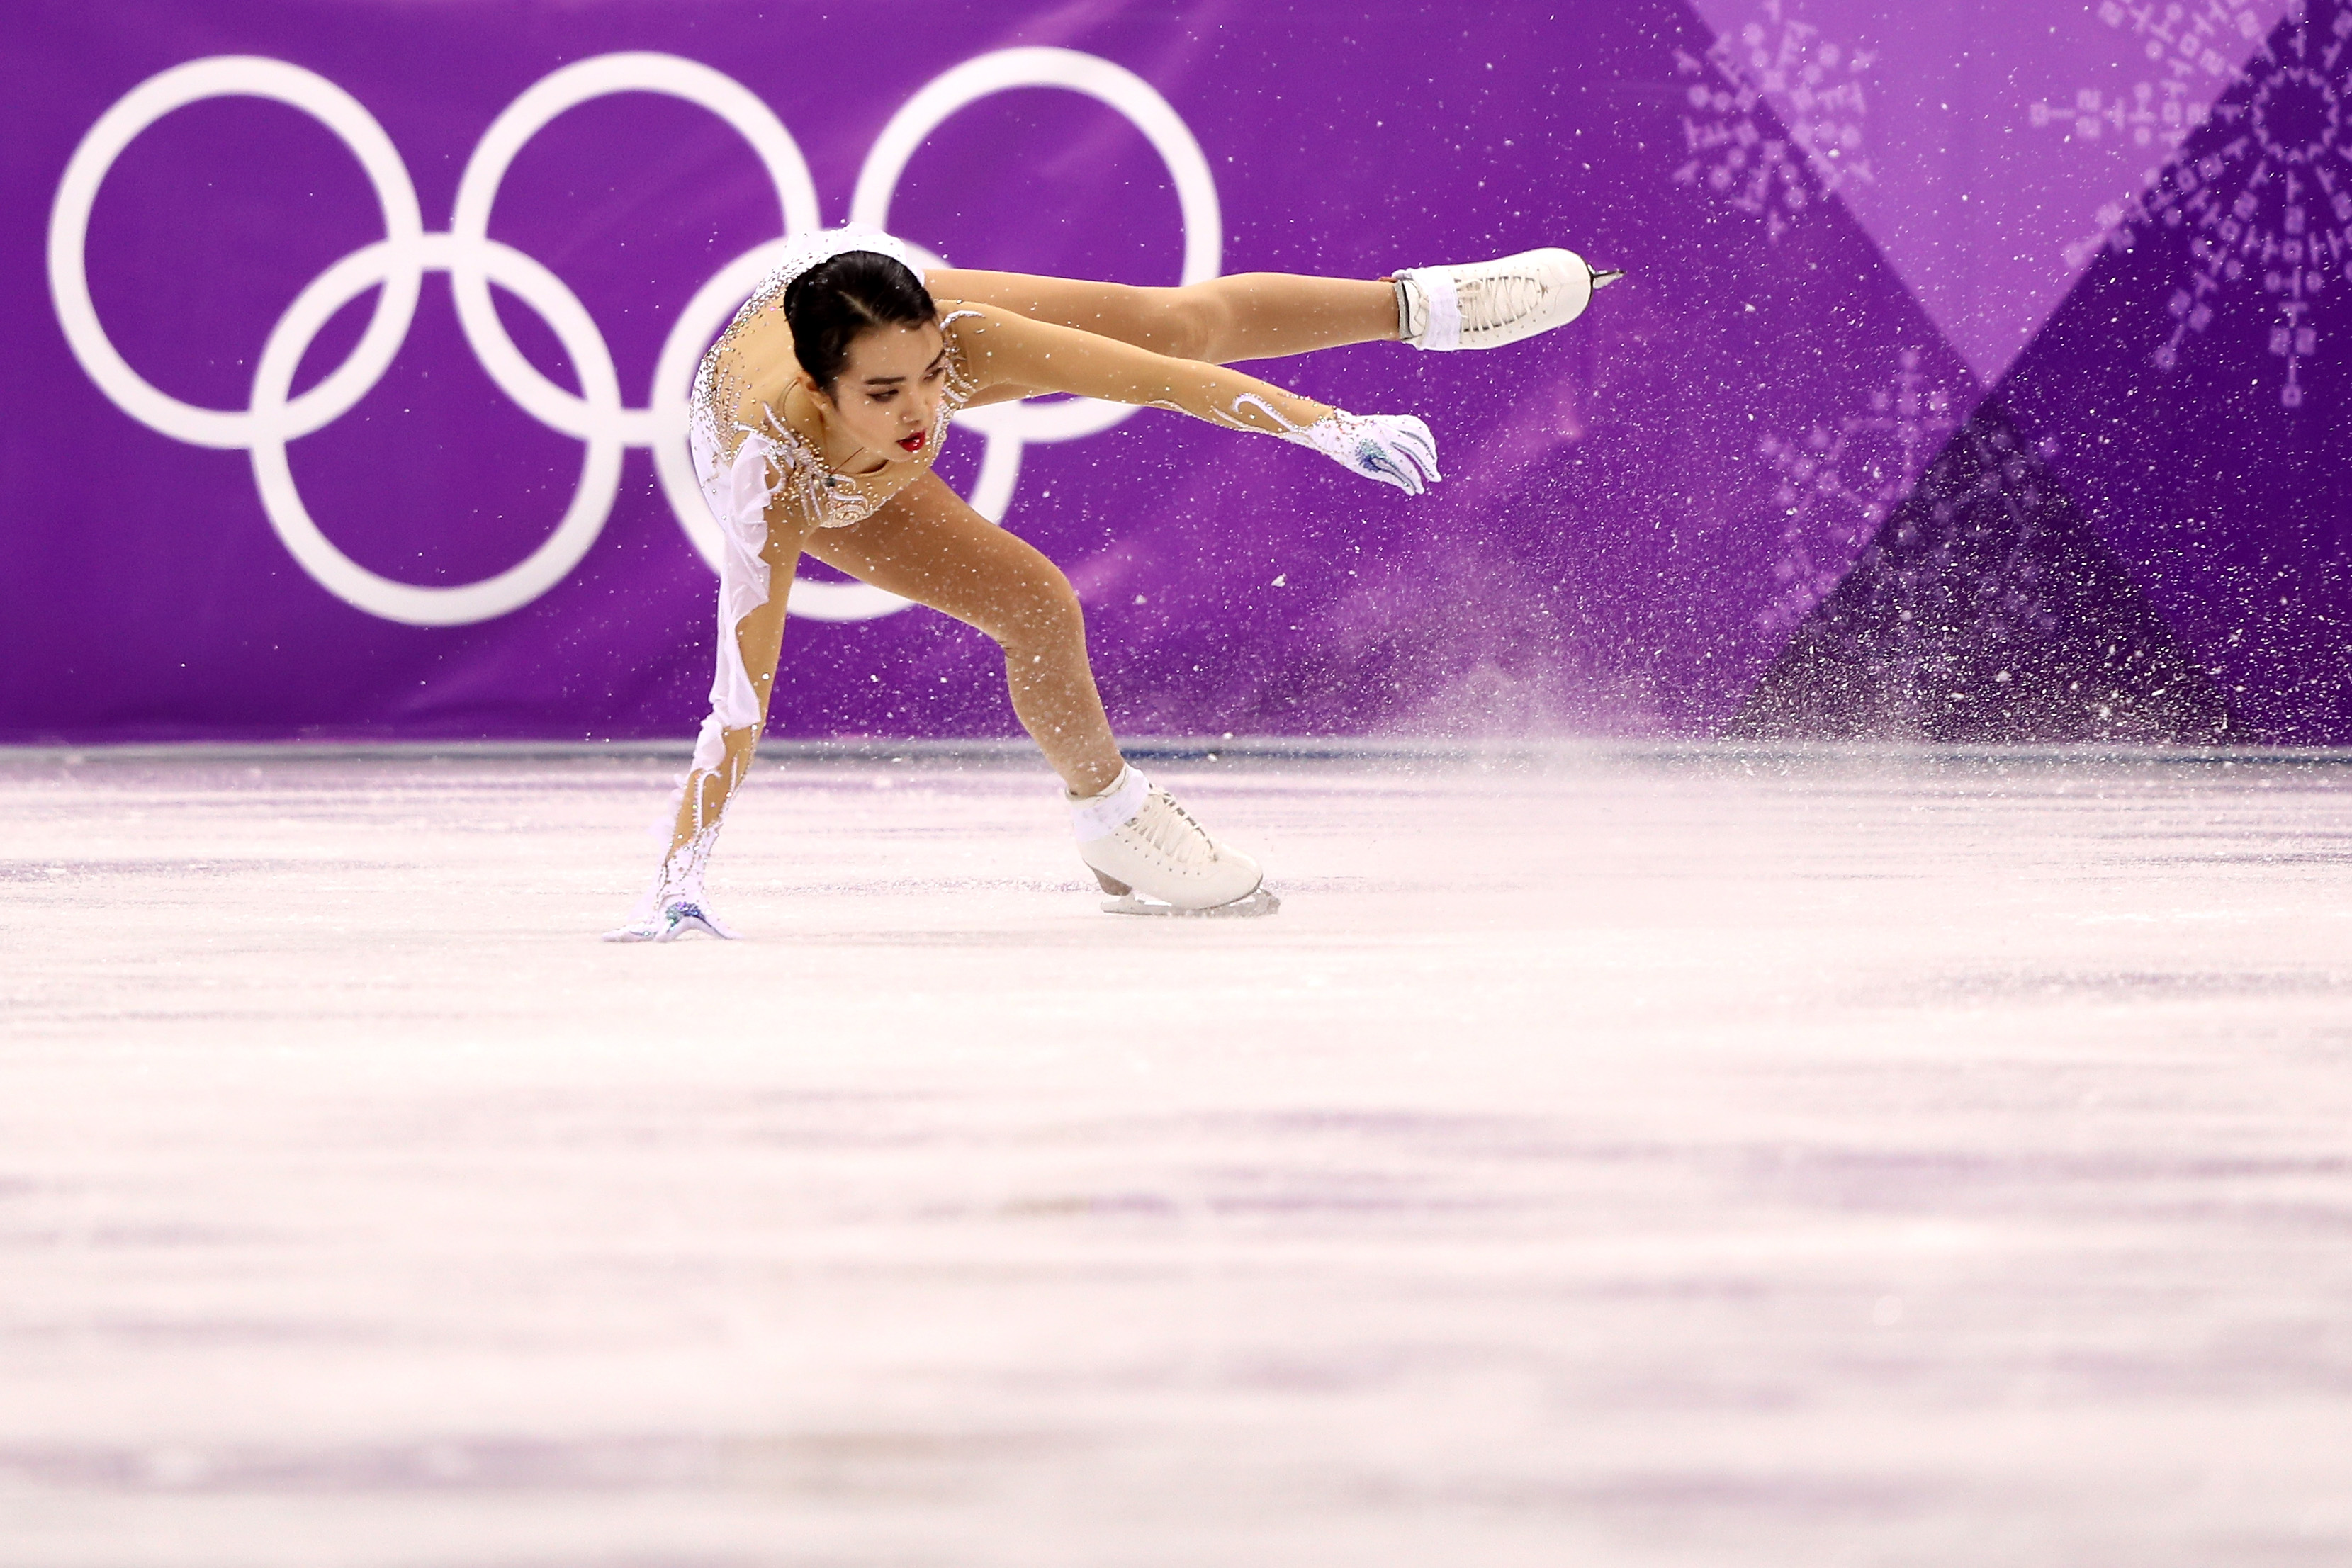 Karen Chen of the United States competes during the Ladies Single Skating Short Program on day twelve of the PyeongChang 2018 Winter Olympic Games at Gangneung Ice Arena on February 21, 2018 in Gangneung, South Korea